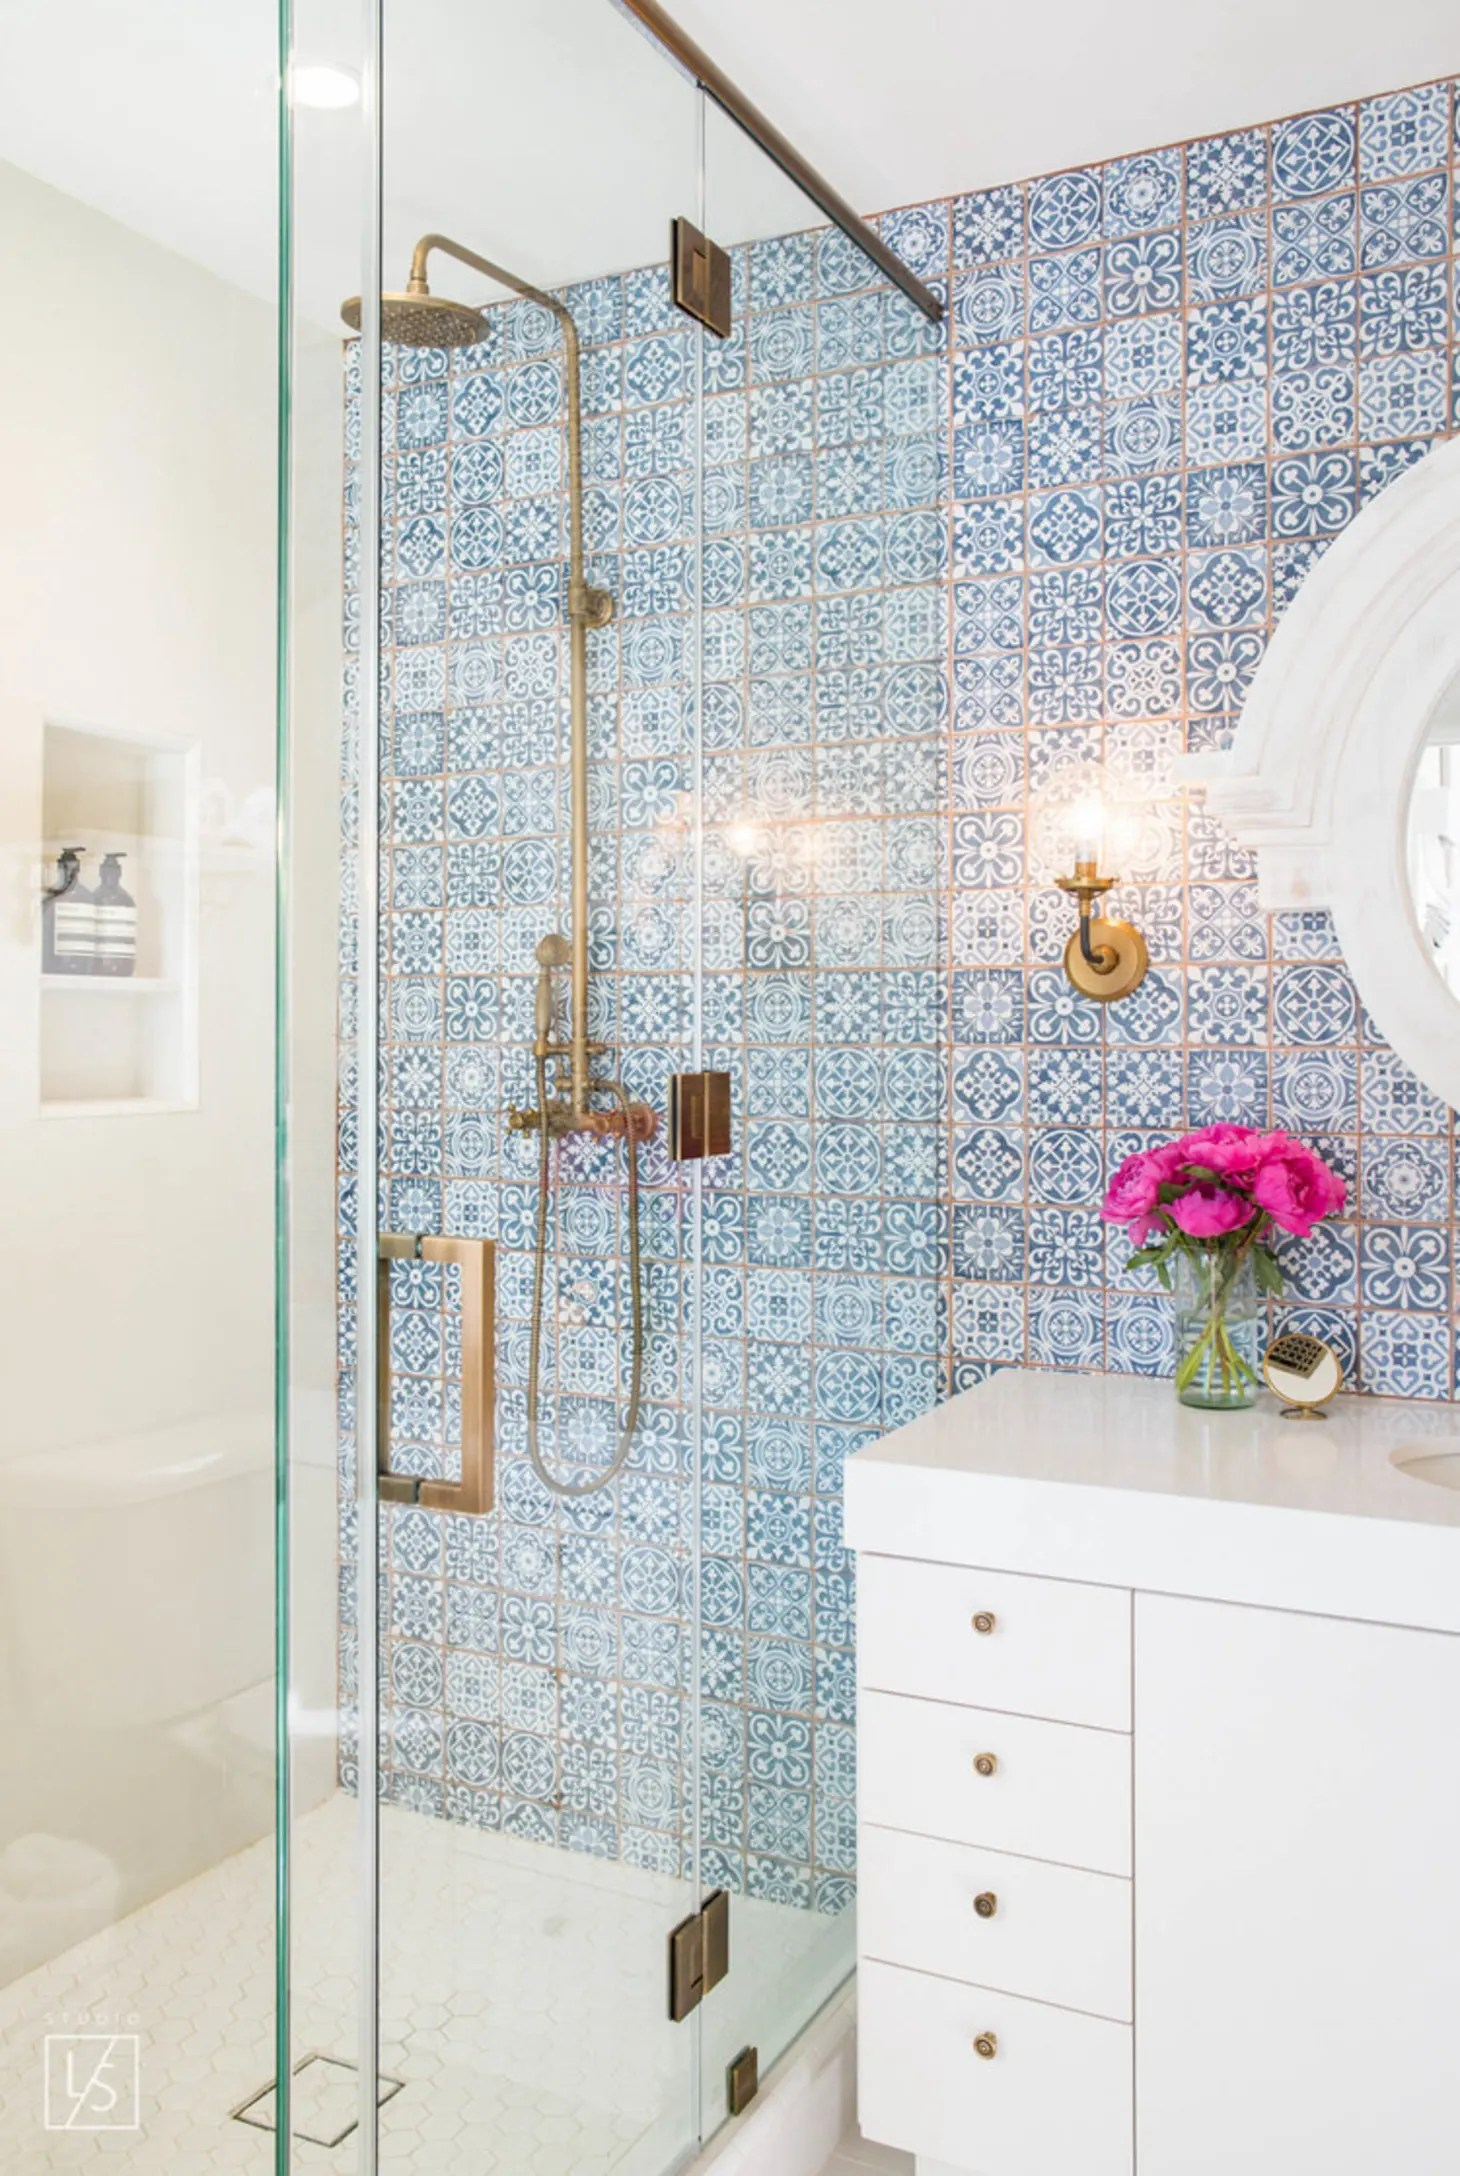 Stylish Remodeling Ideas for Small Bathrooms   Apartment ... on Small Apartment Bathroom  id=44811